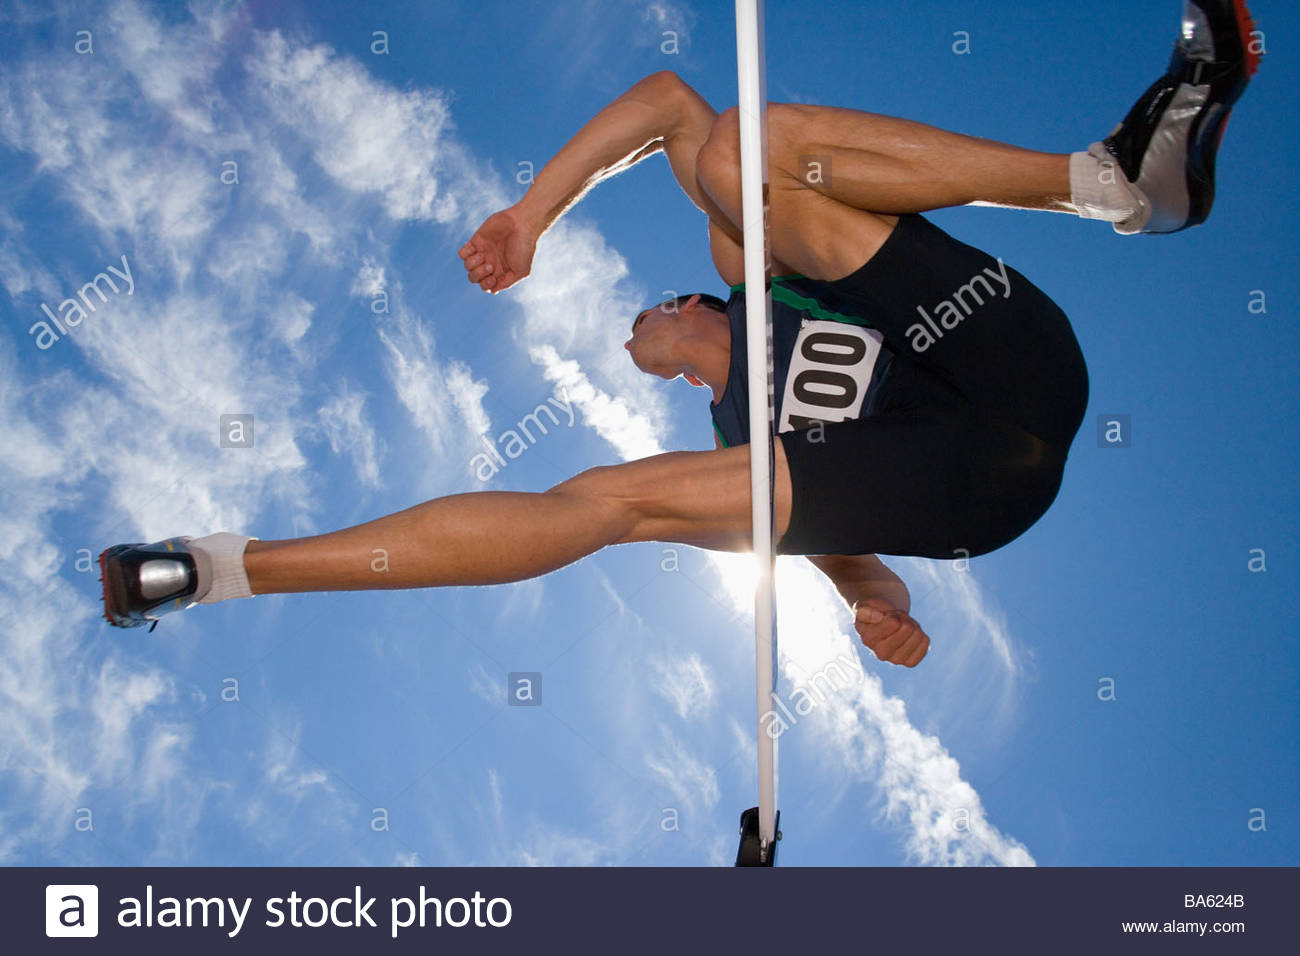 Male athlete jumping over hurdle, view from below - Stock Image